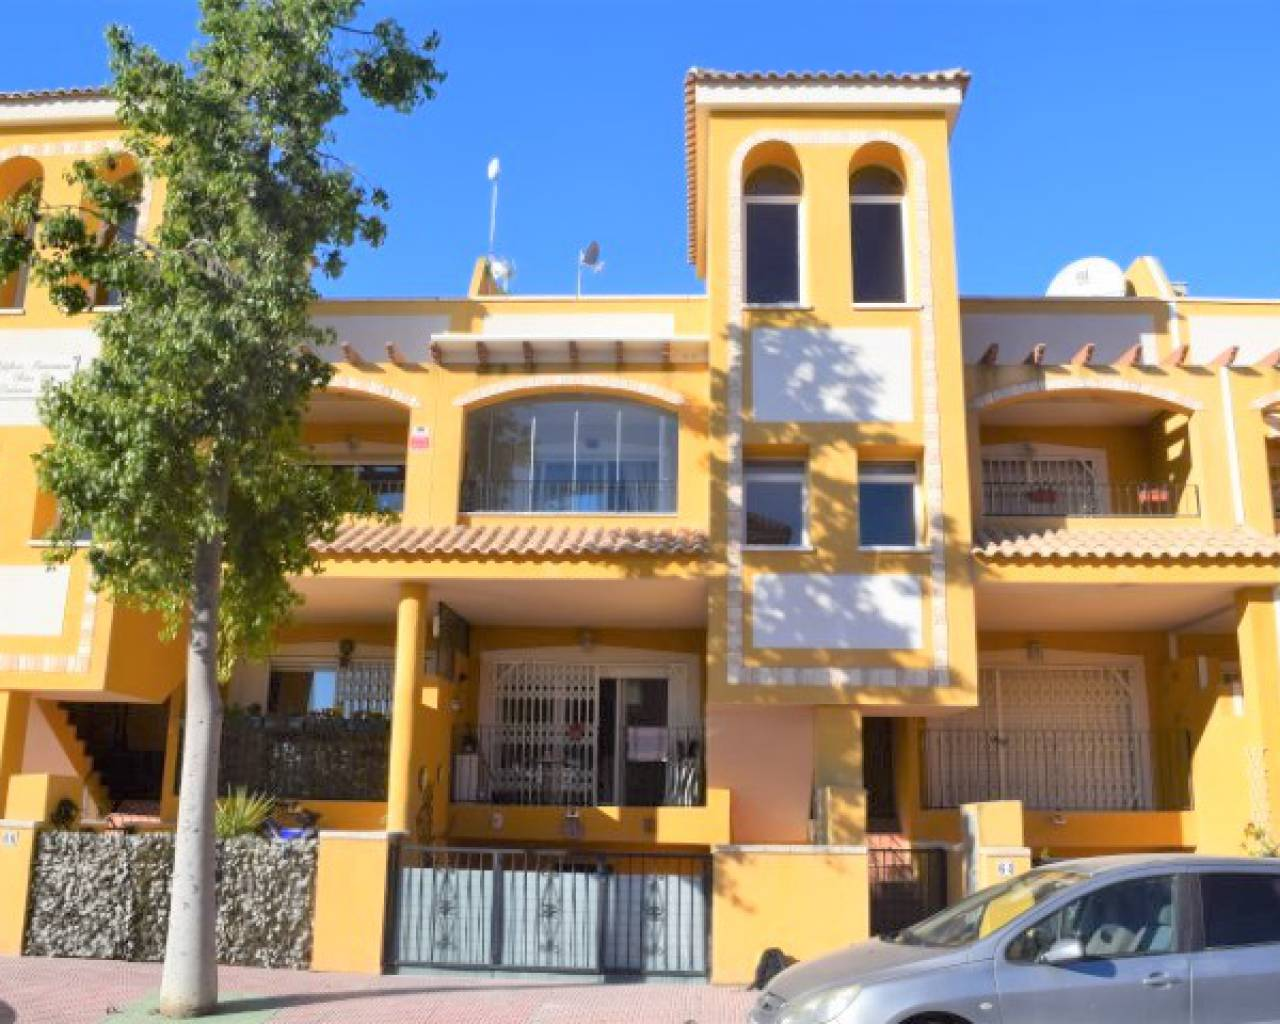 Apartment - Sale - Alicante - Daya Nueva